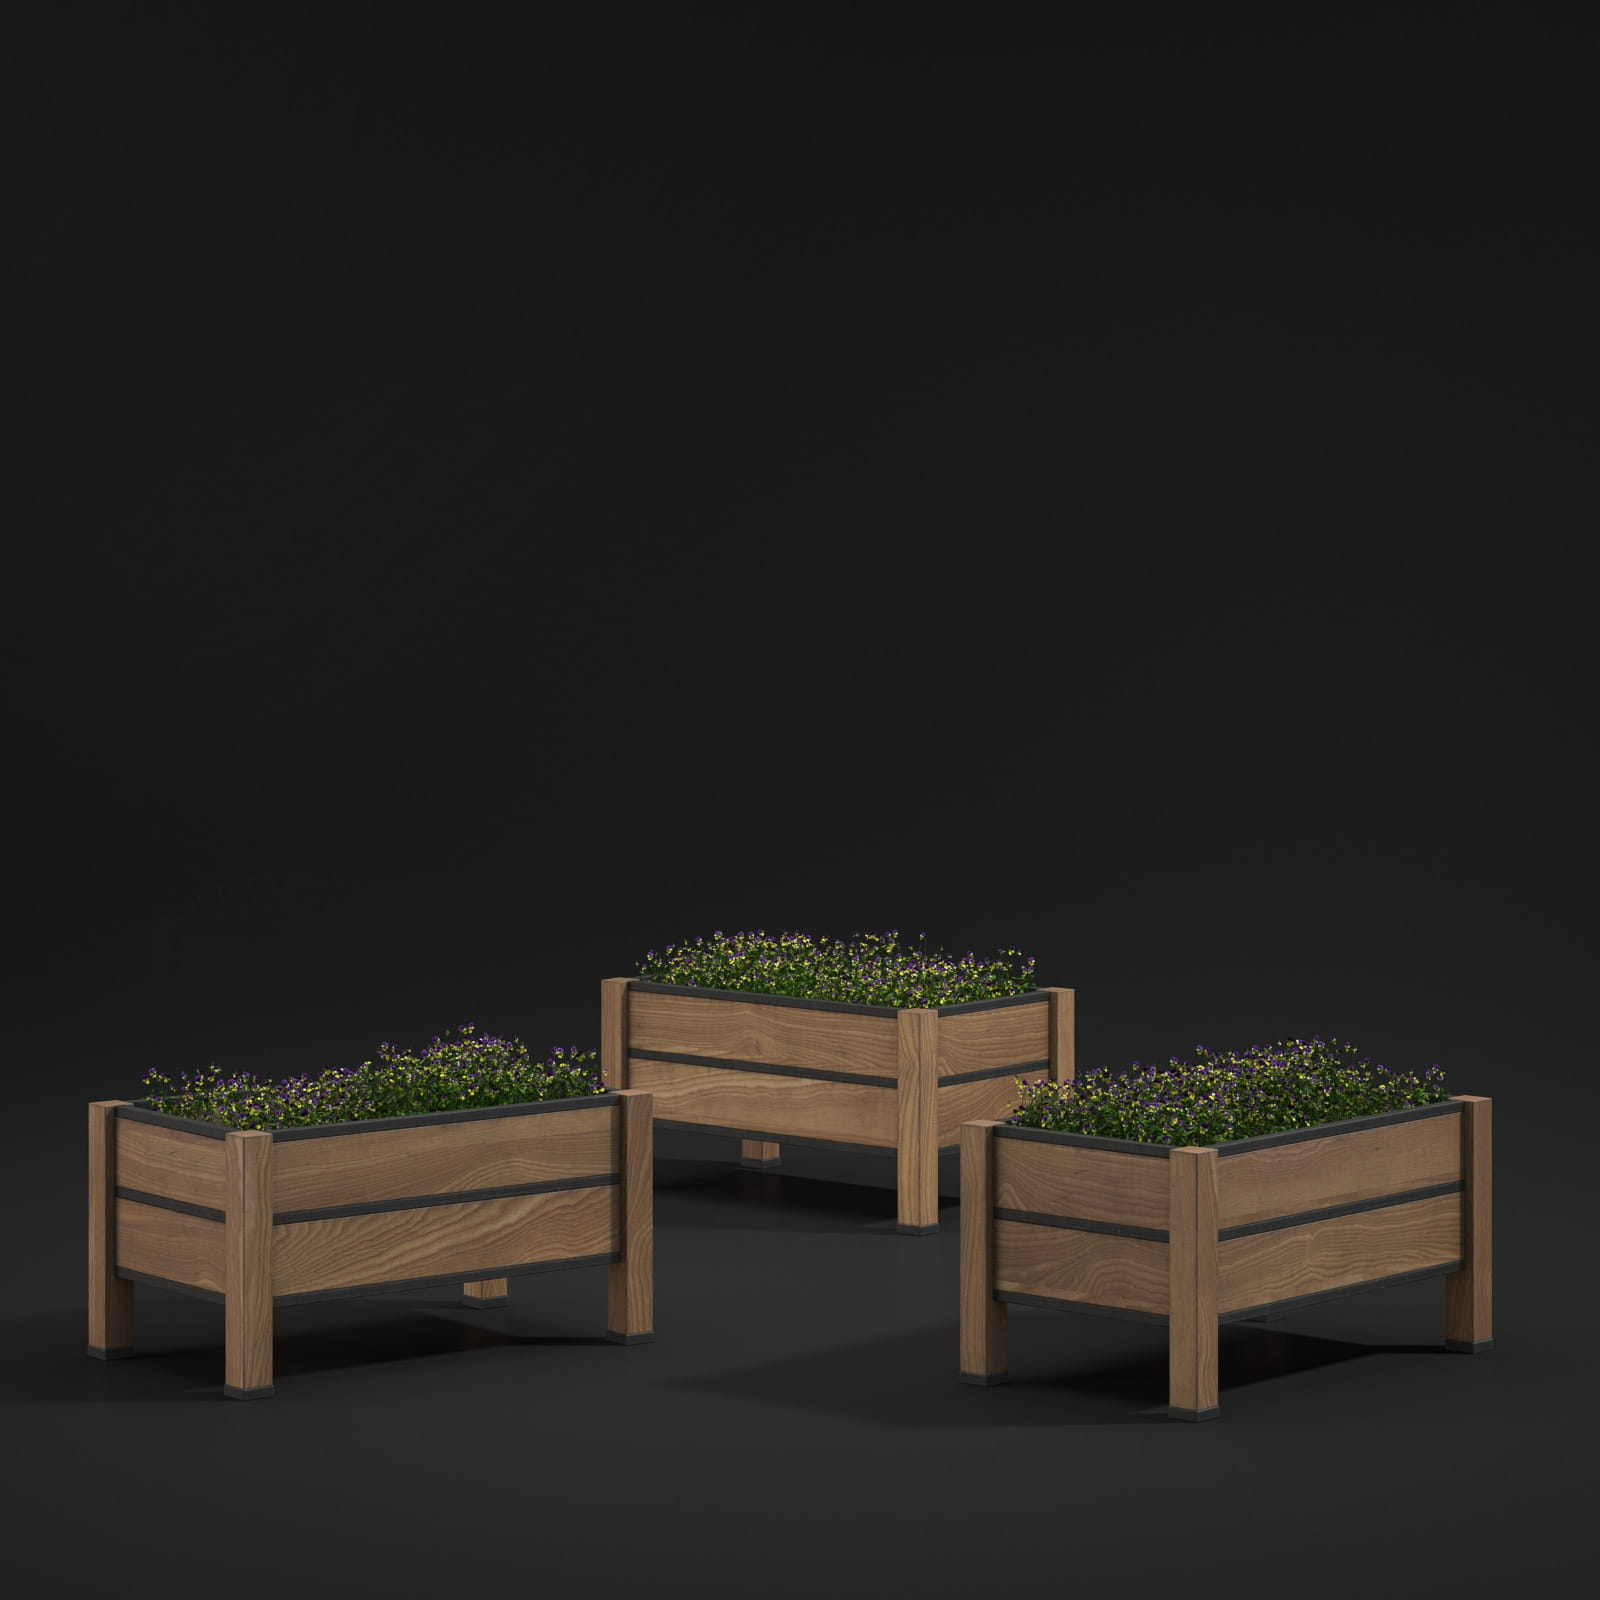 flowerbed boxes 33 AM211 Archmodels